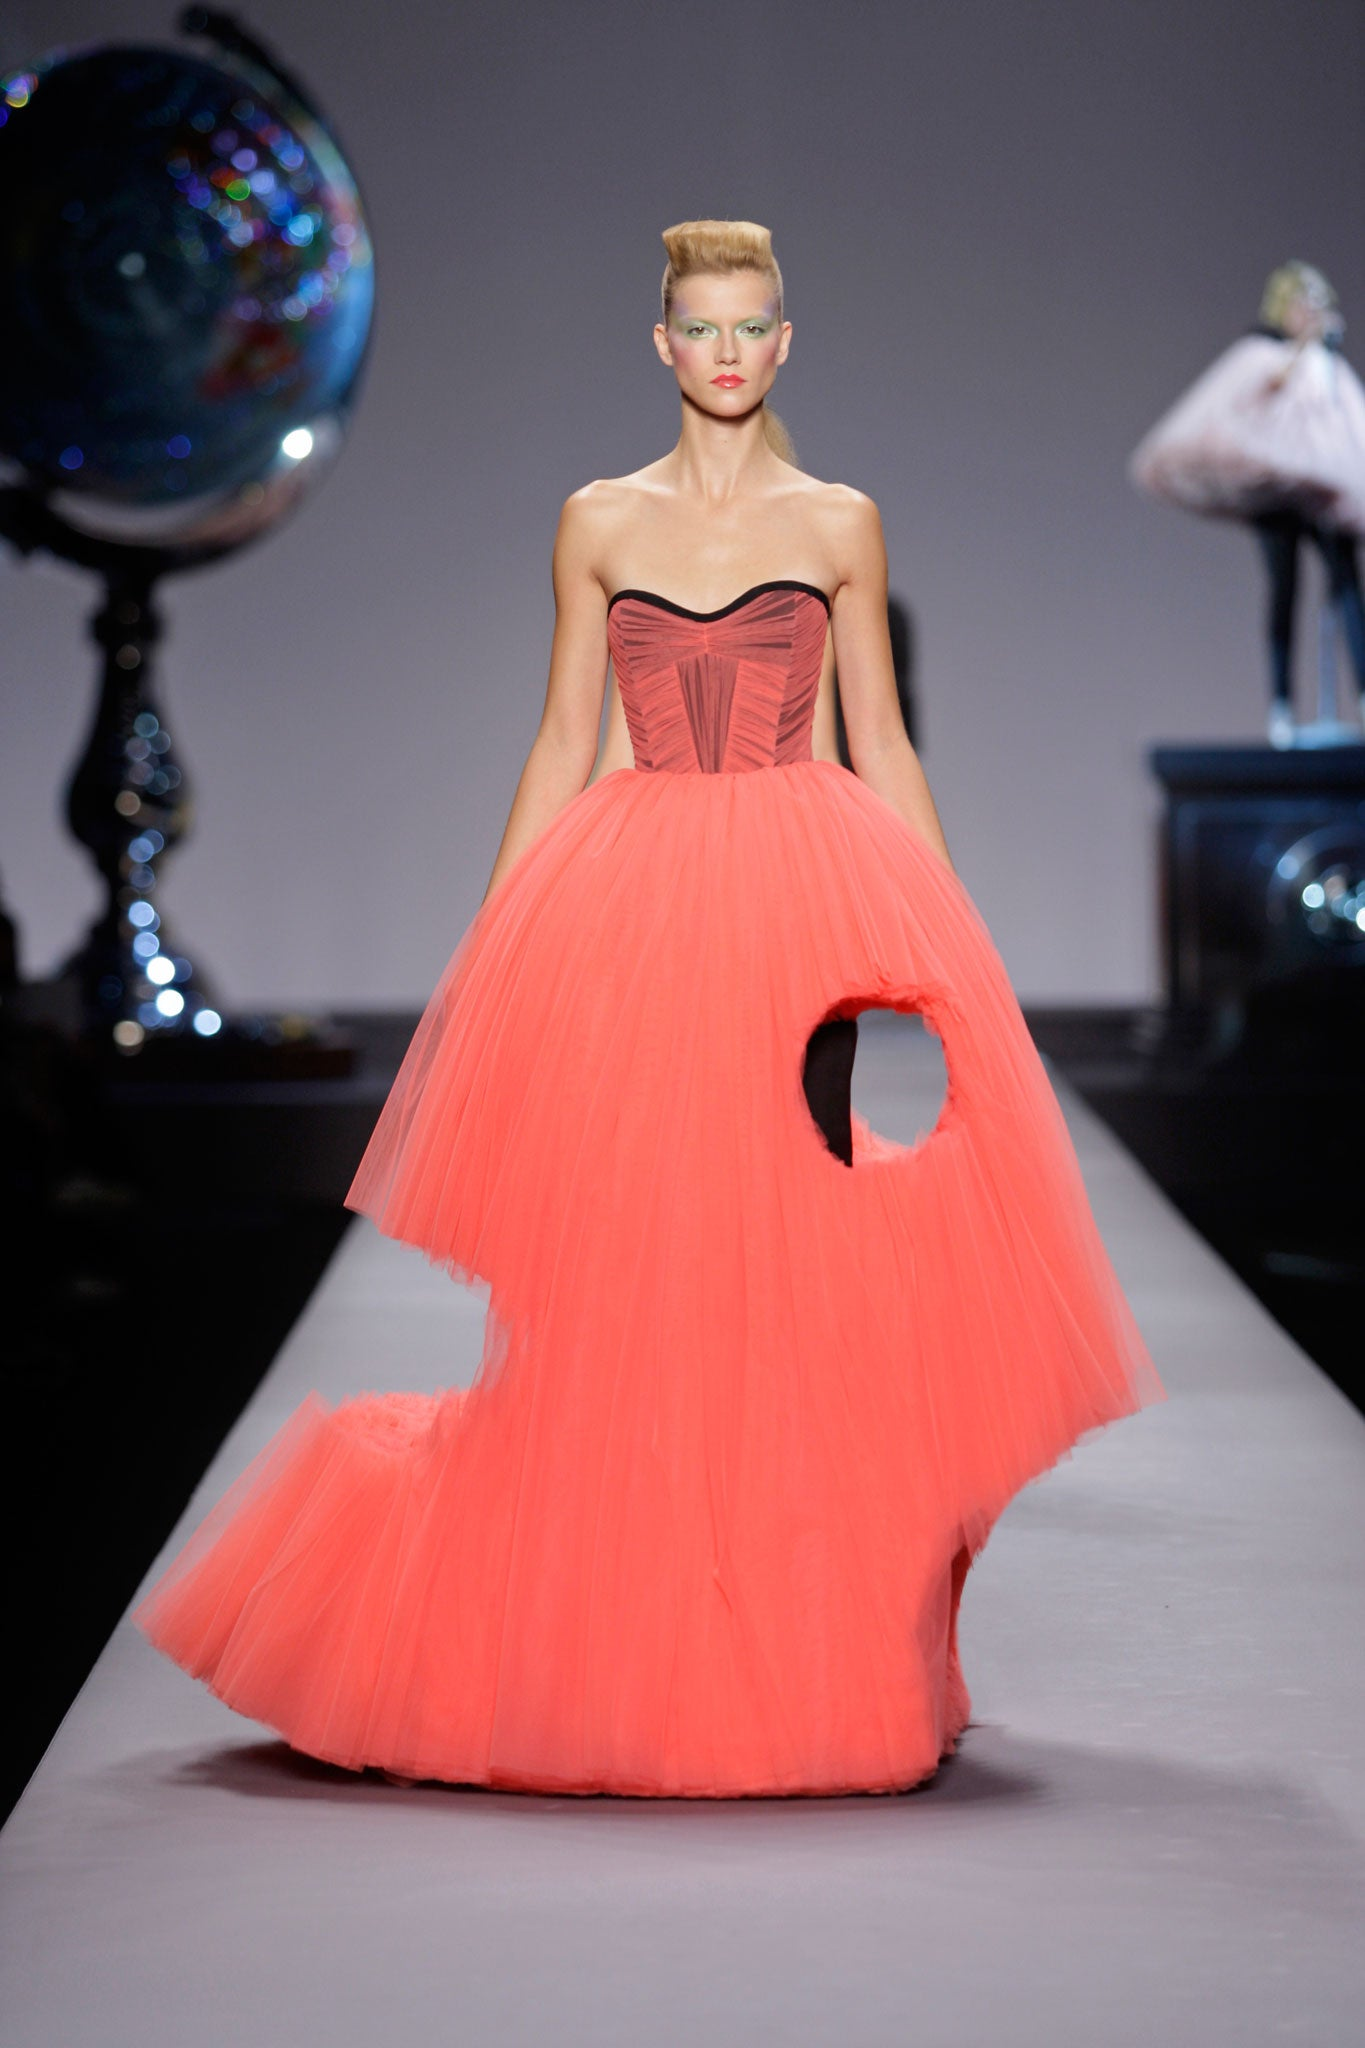 Dutch Courage Meet Viktor And Rolf The Off The Wall Designers Behind Fashion S Weirdest Creations The Independent